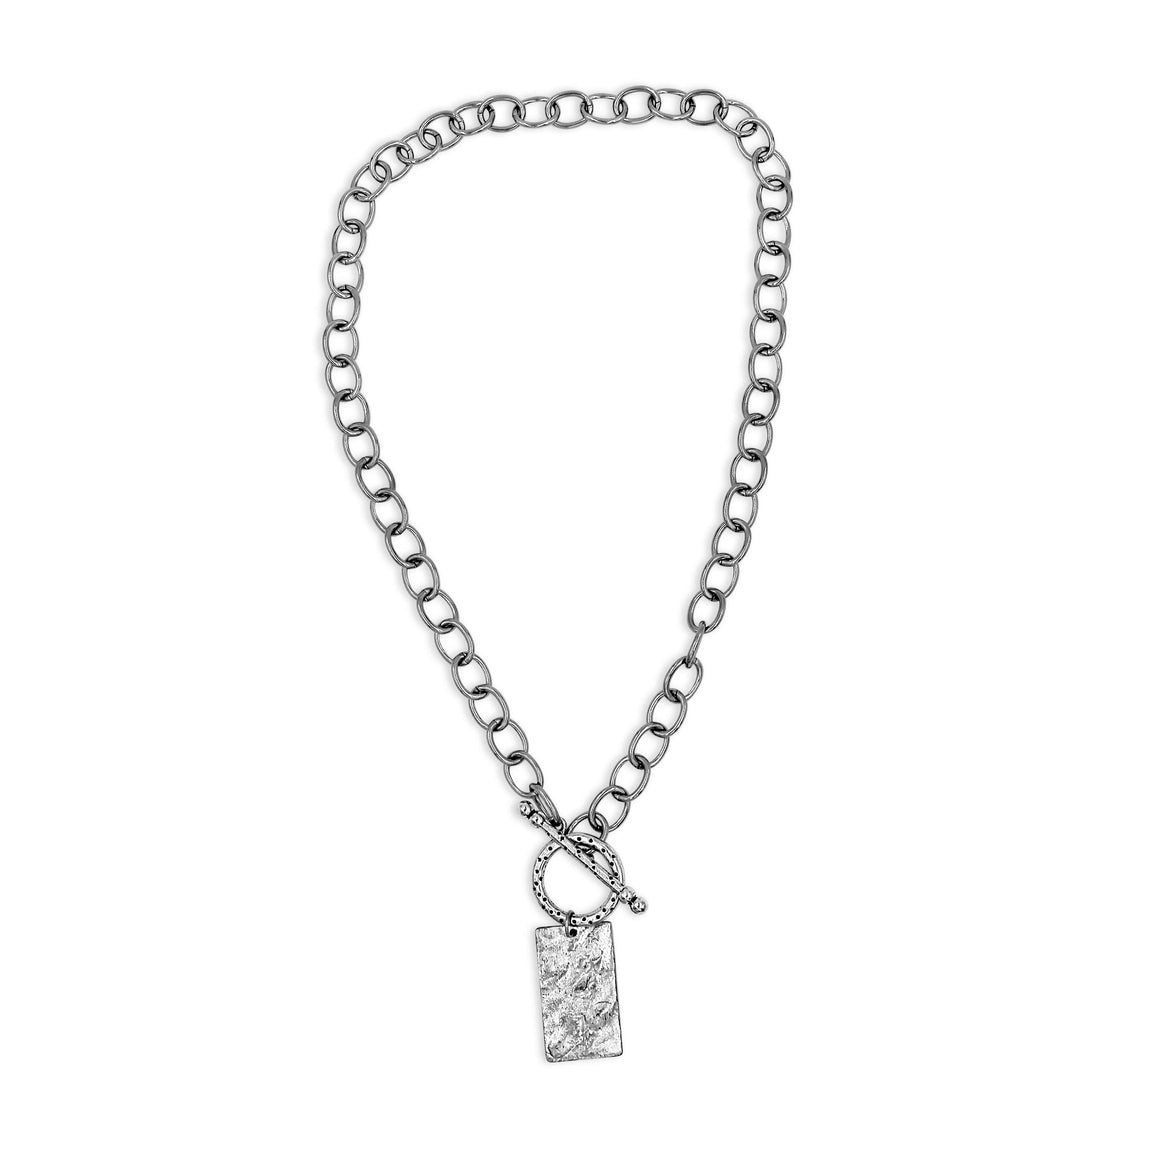 Silver Statement Necklace with Rectangle Pendant